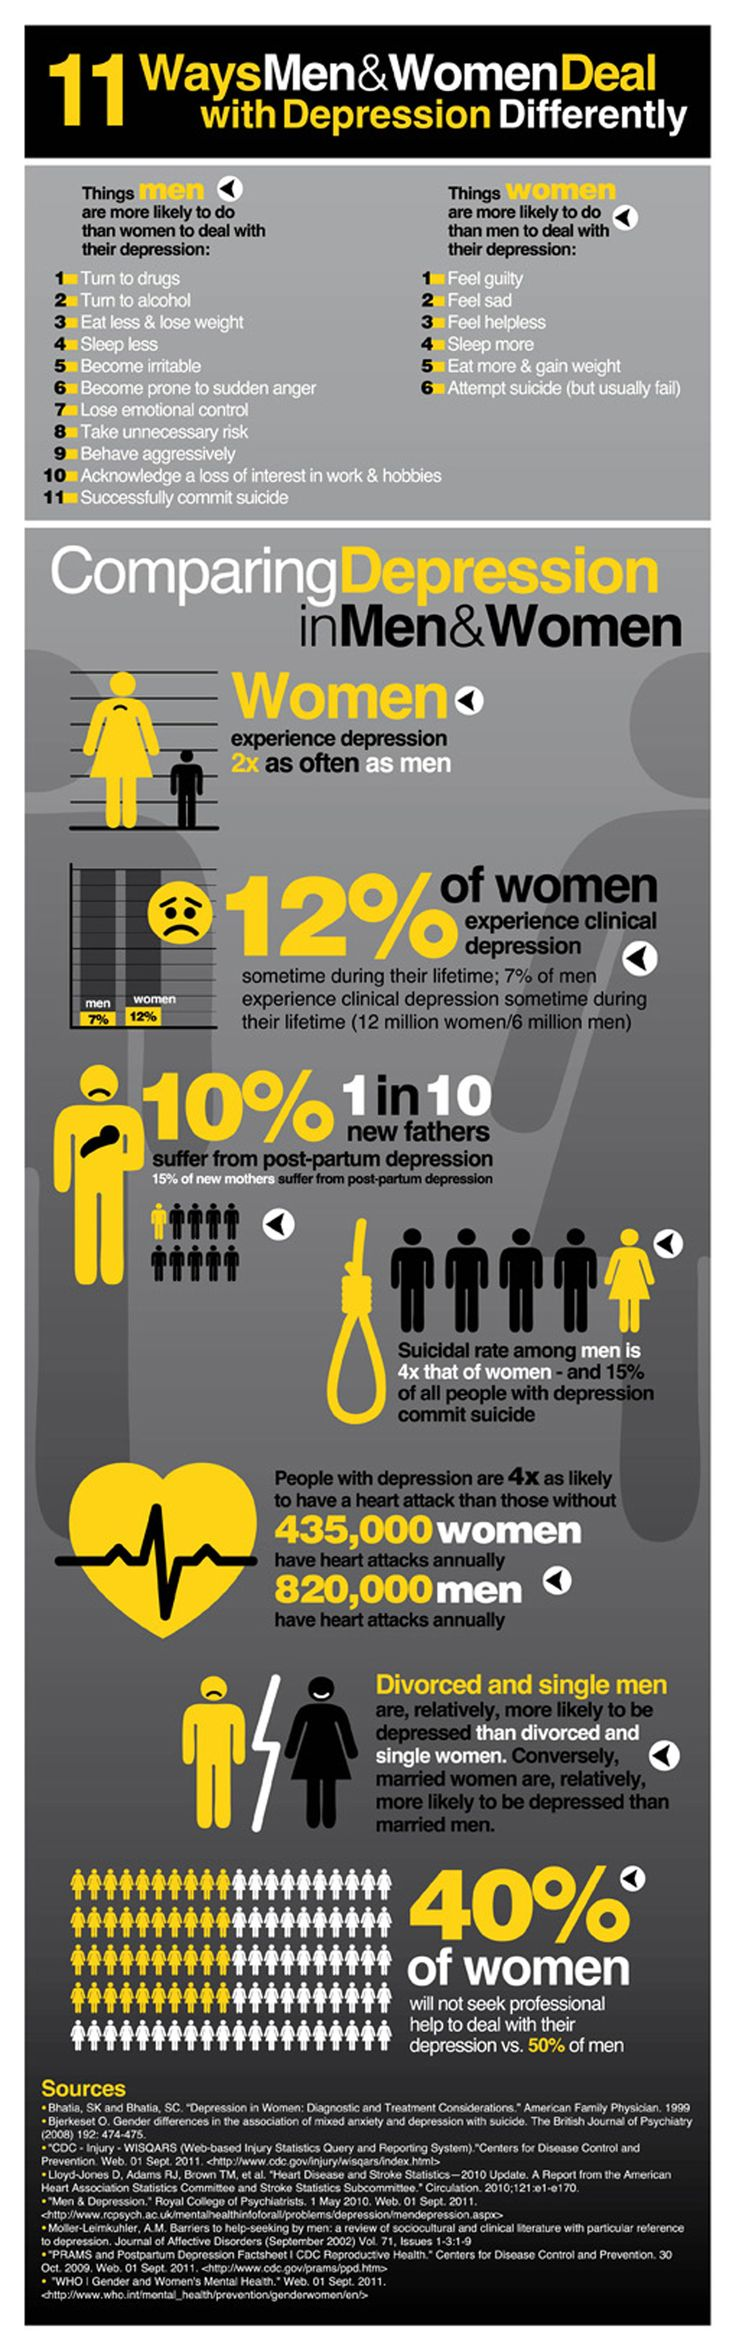 Infographic: Men and women deal with depression differently. National Depression Screening Day is Thursday, Oct. 10, 2013.